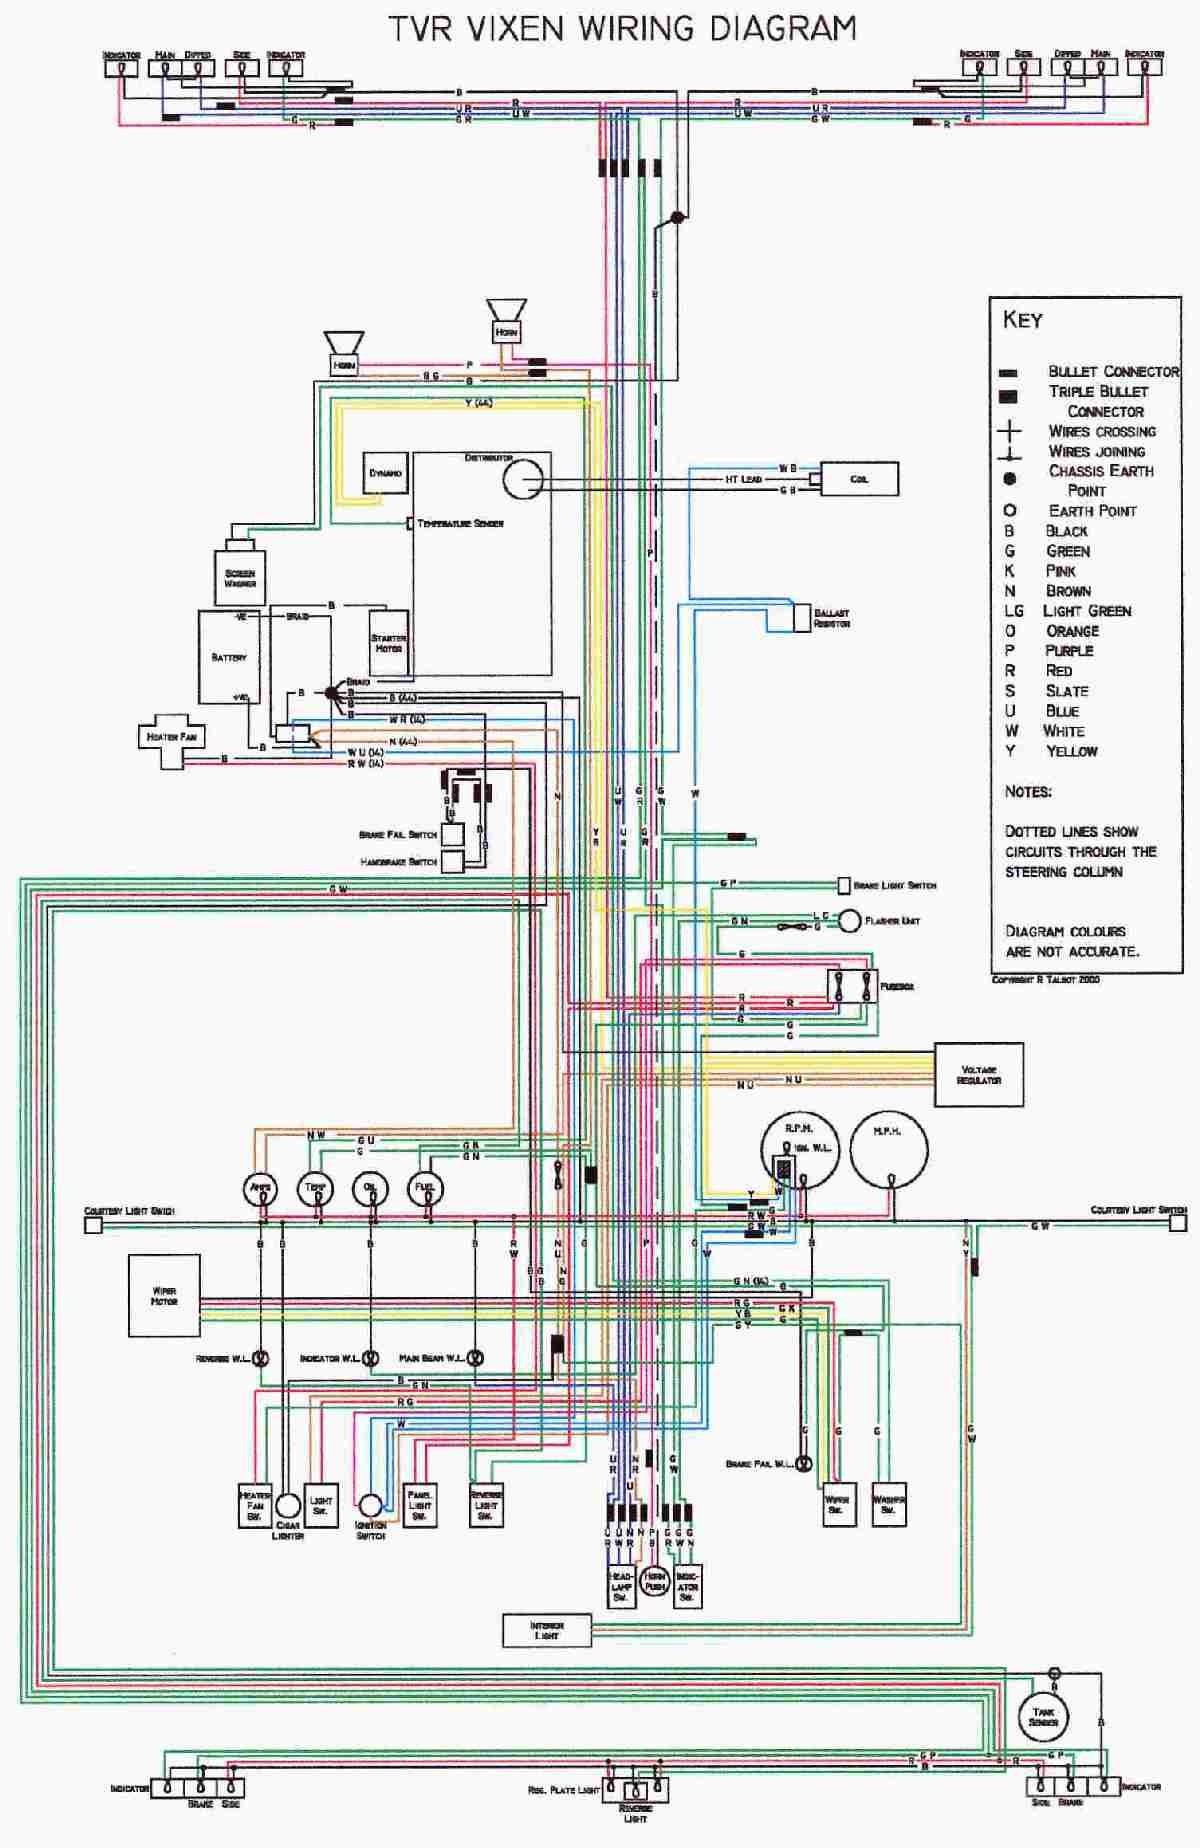 Suzuki Gsxr Fuse Box Wiring Library 2000 750 Diagram Schematic Every Diagrams Schematics Ultra Small Light Weight Rwd Idea Page 5